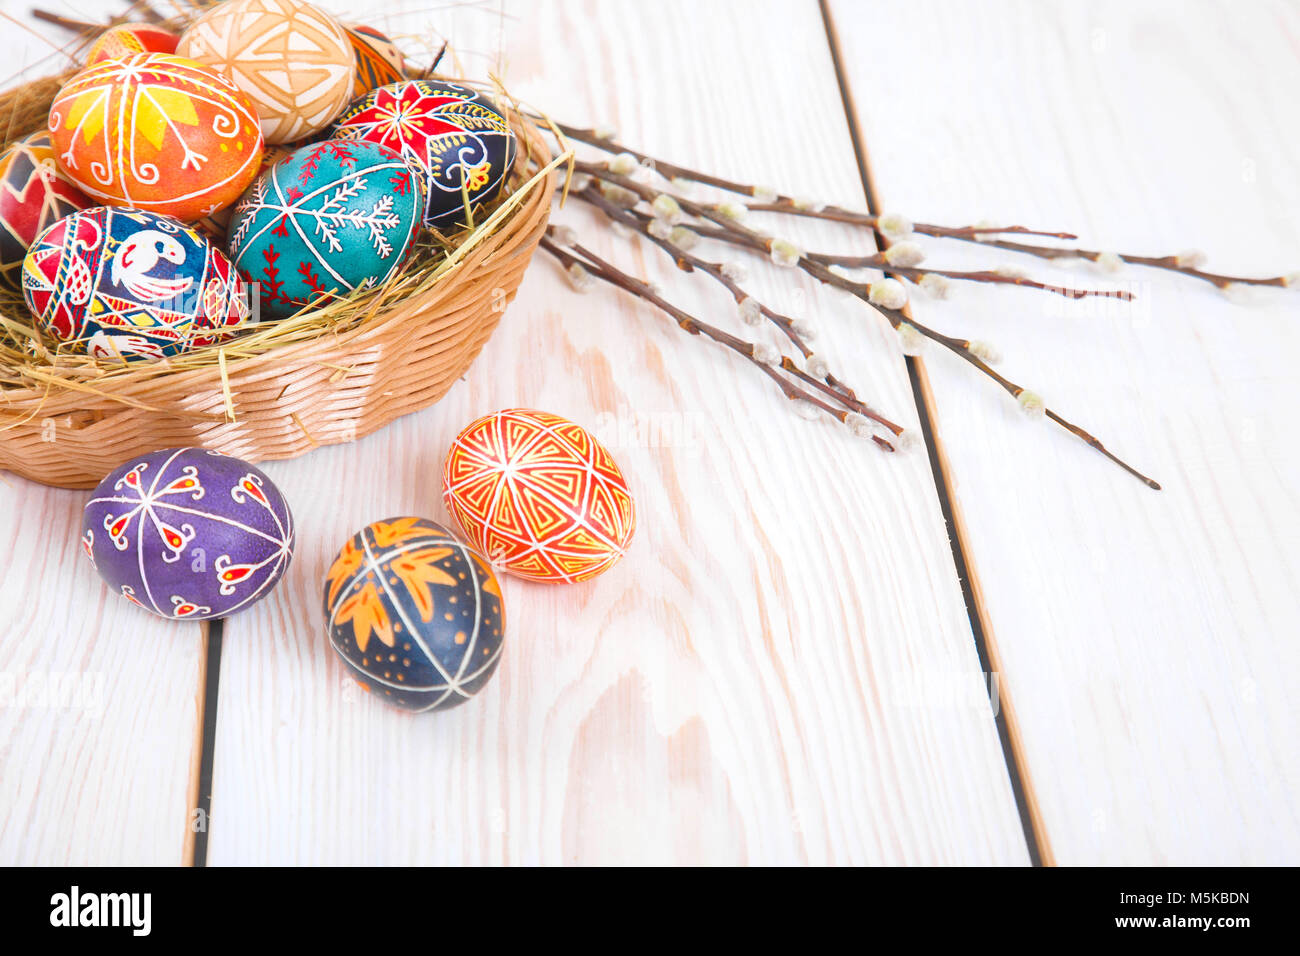 Easter eggs in a basket on a white plank background. Symbol of Christian holidays. - Stock Image